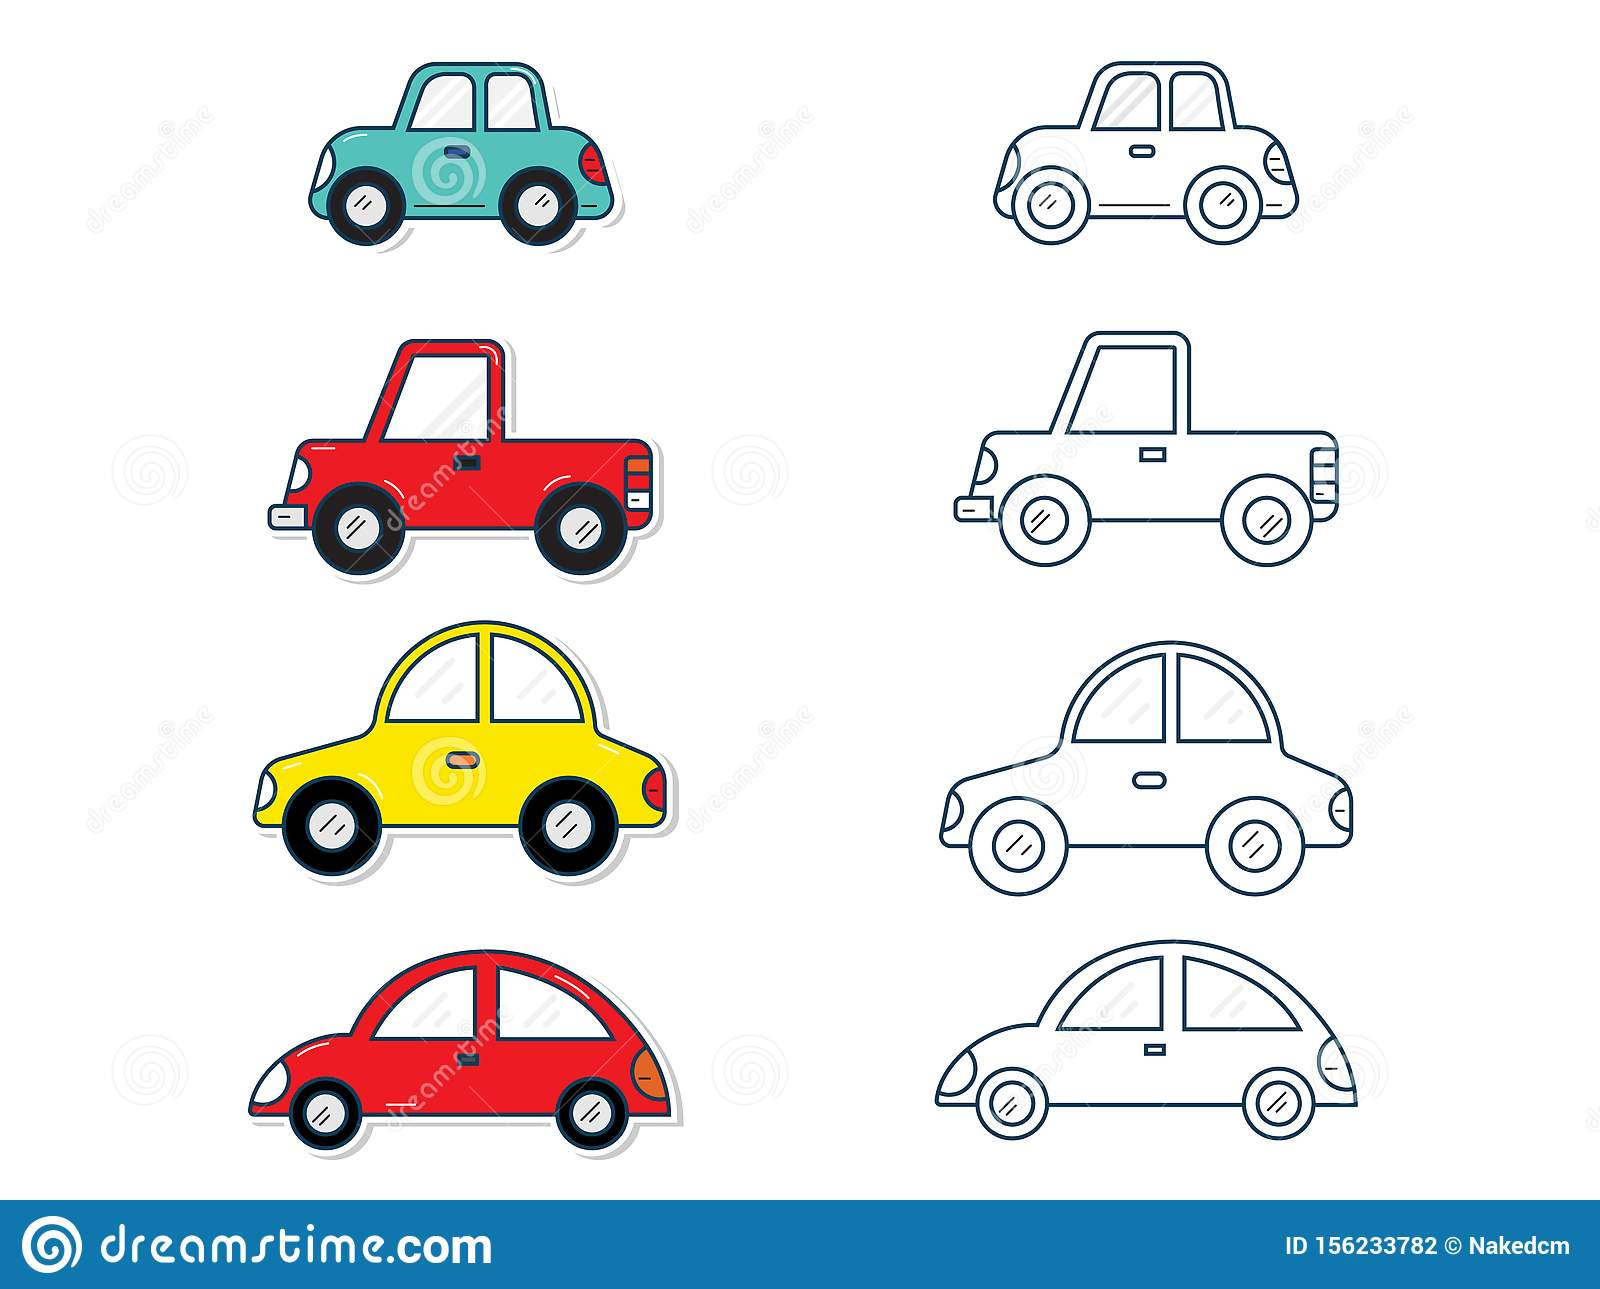 Set of cars for kids stock vector. Illustration of service - 156233782